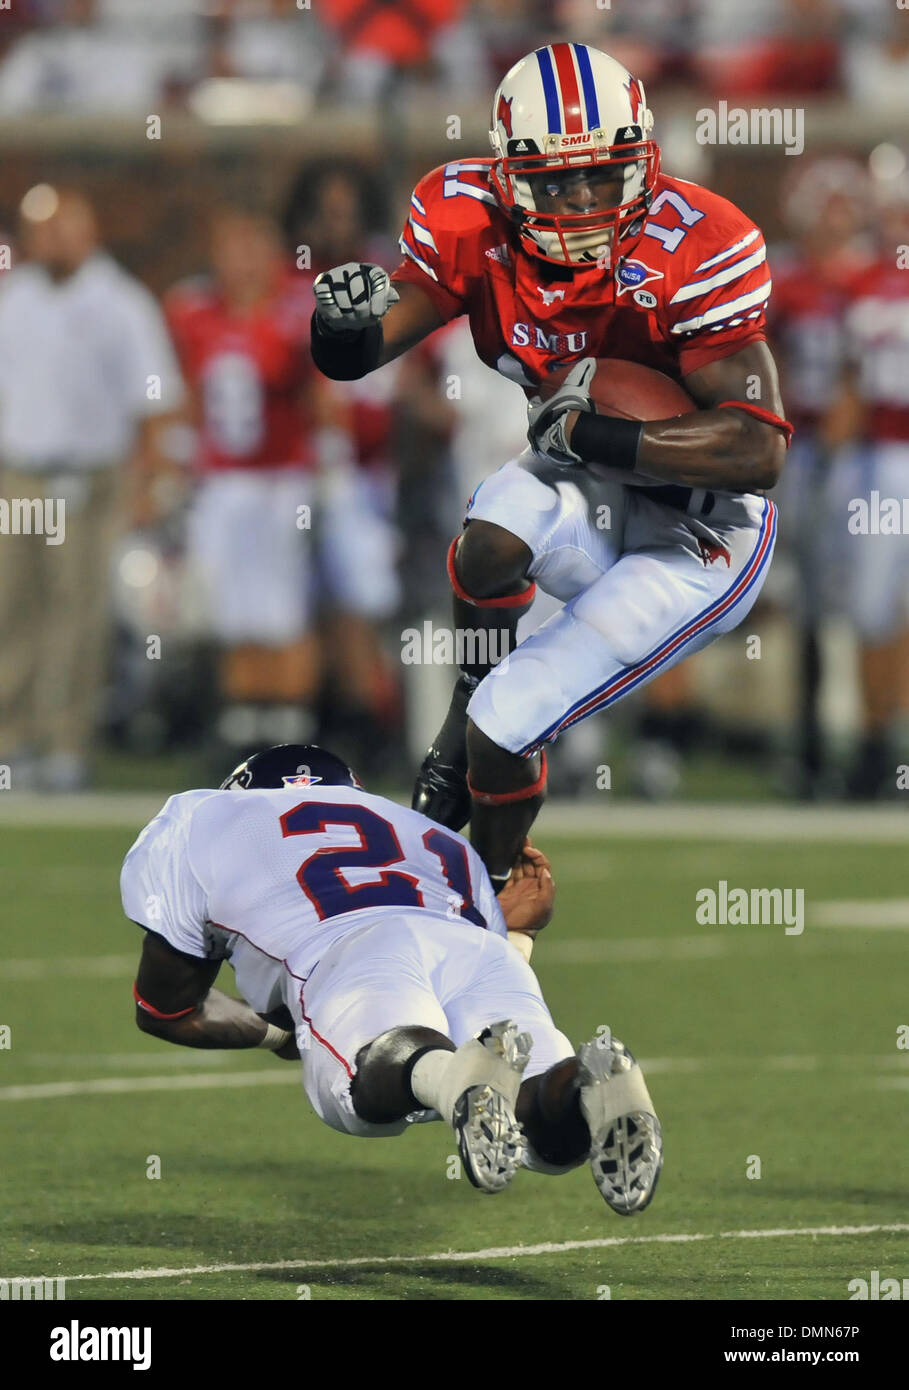 05 SEP 2009:  Stephen F Austin travels to Dallas to face the SMU Ponies in the season kickoff.  With a 4th quarter come back the Ponies win 31-23 over SFA.  SMU WR Emmanuel Sanders leaps over DB Chad Haynes. (Credit Image: © Southcreek Global/ZUMApress.com) - Stock Image